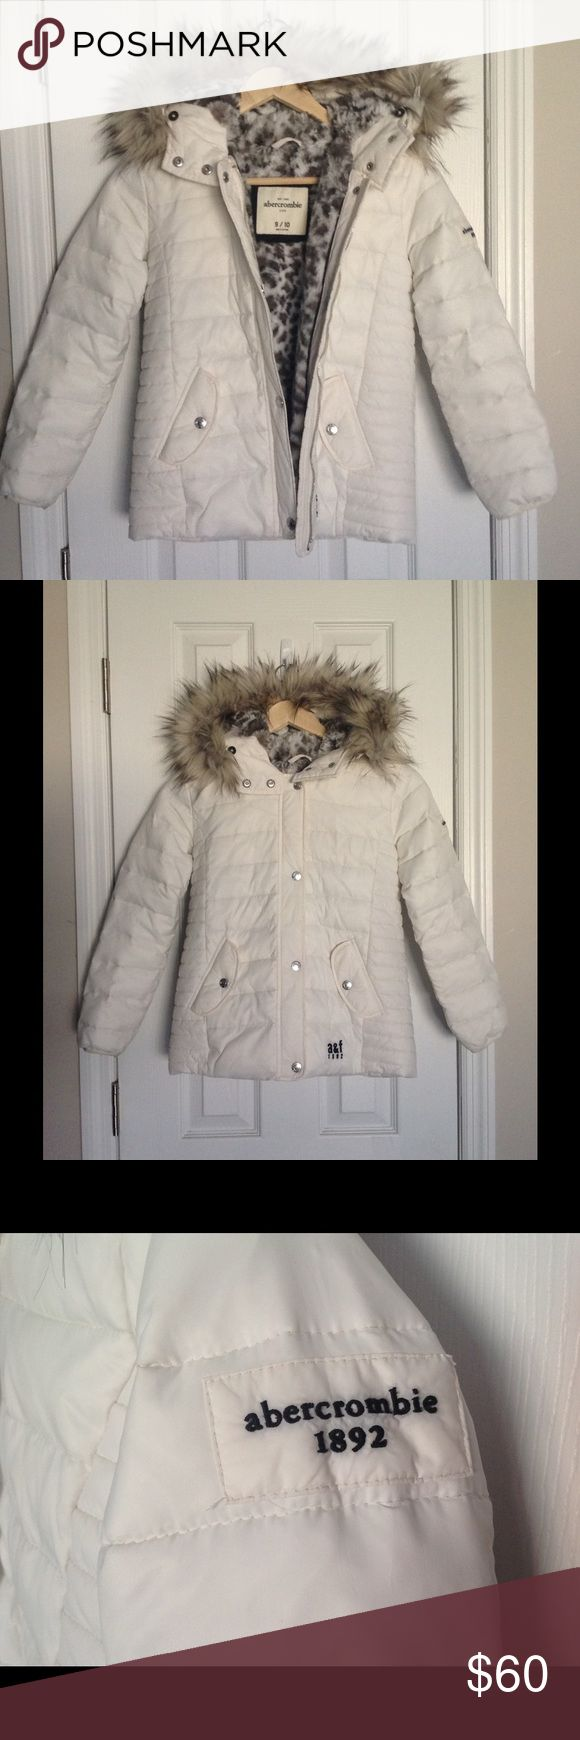 White Abercrombie Girl's Fur-lined Winter Jacket White Abercrombie girl's fur-lined winter jacket in size 9/10. This jacket is super cute! My daughter out-grew it before the season even ended. It has been worn only a handful of times and is in near perfect condition. Will consider all reasonable OFFERS! abercrombie kids Jackets & Coats Puffers